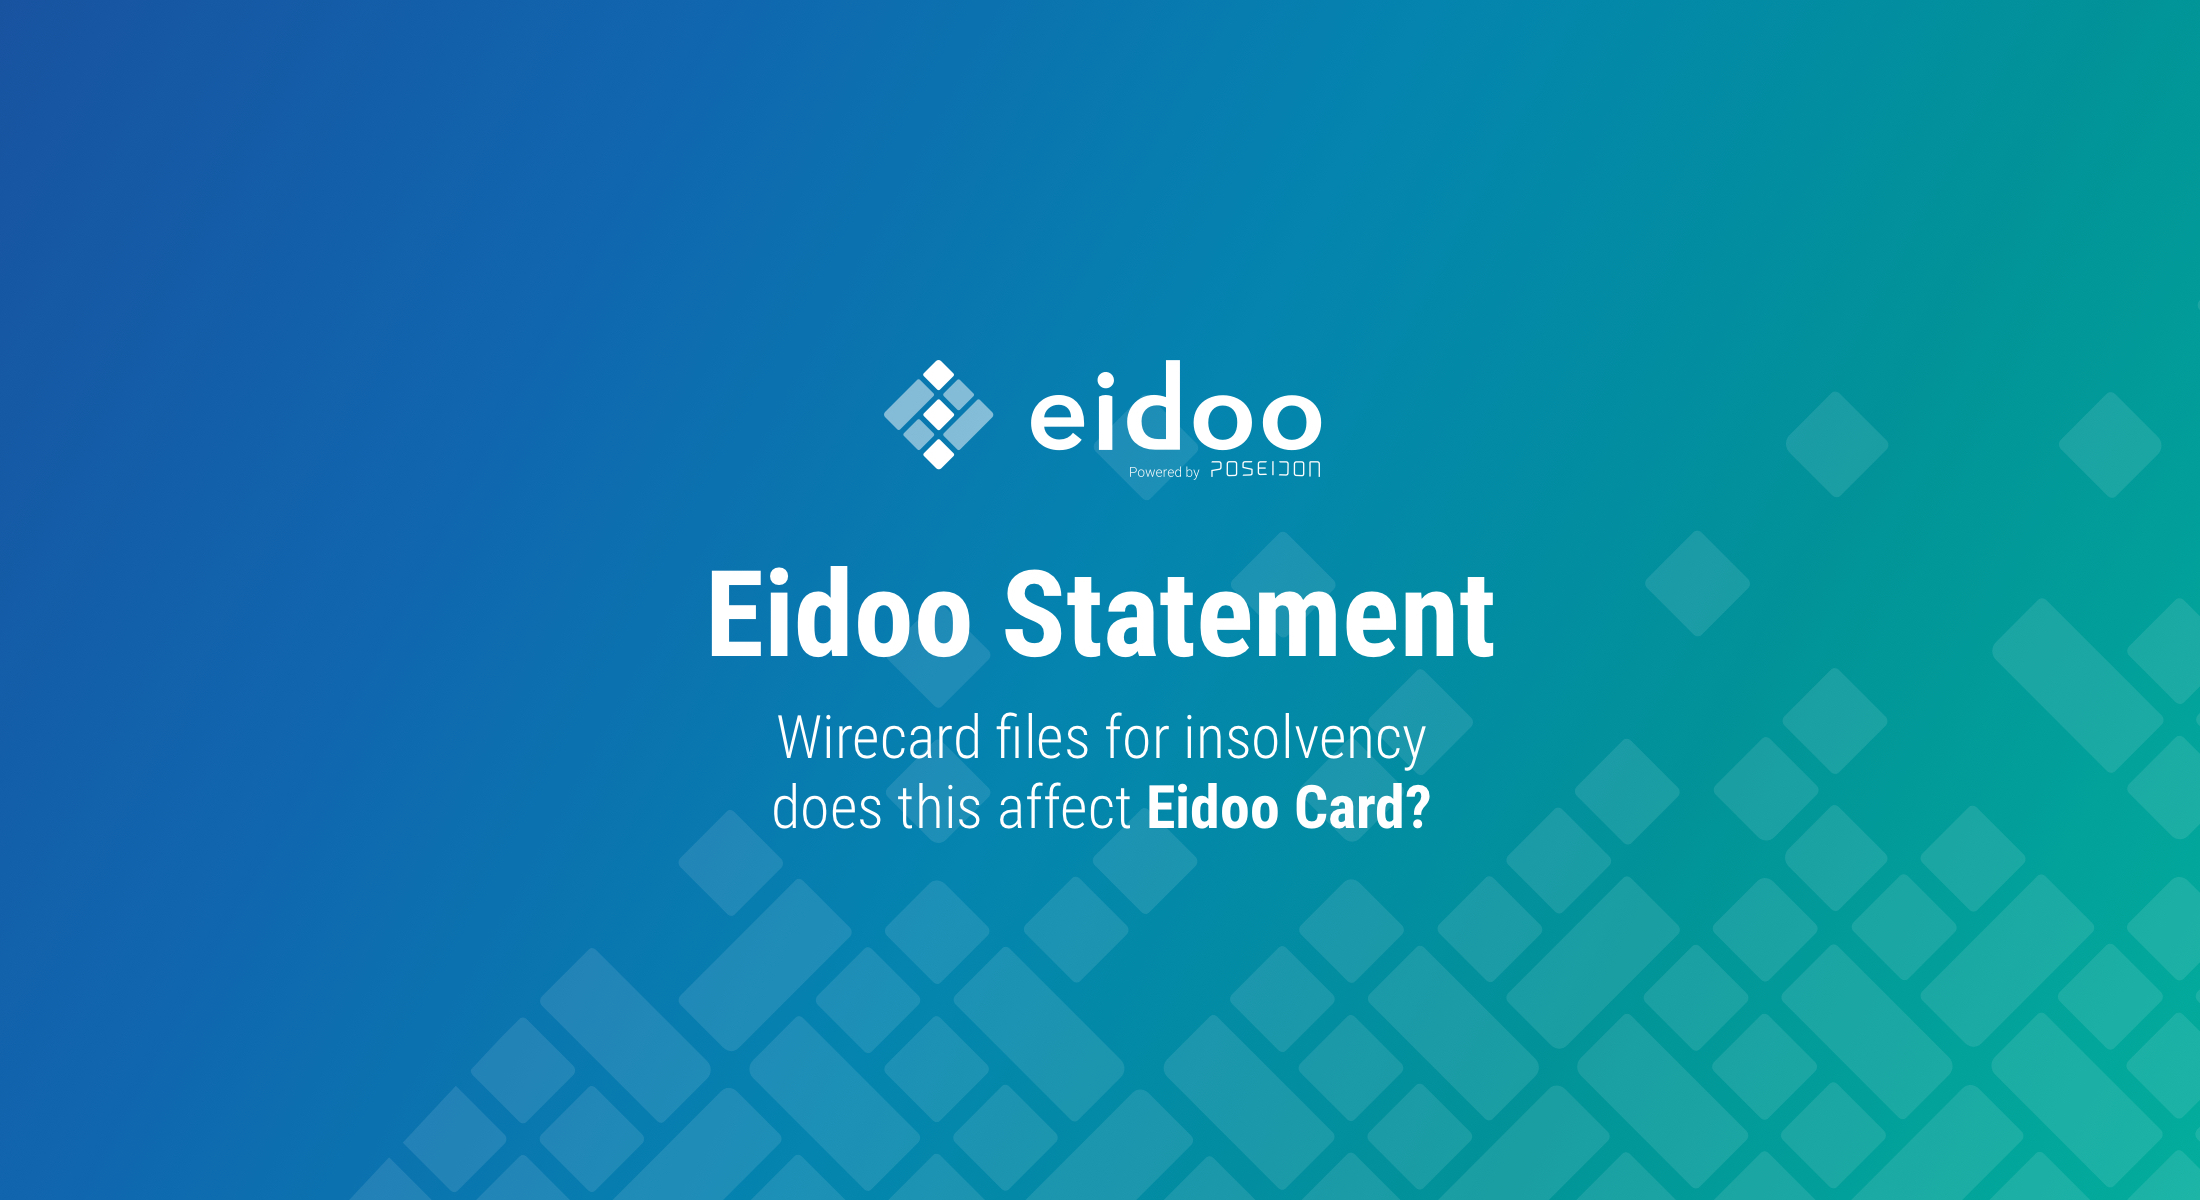 Eidoo Card statement on Wirecard filing for insolvency